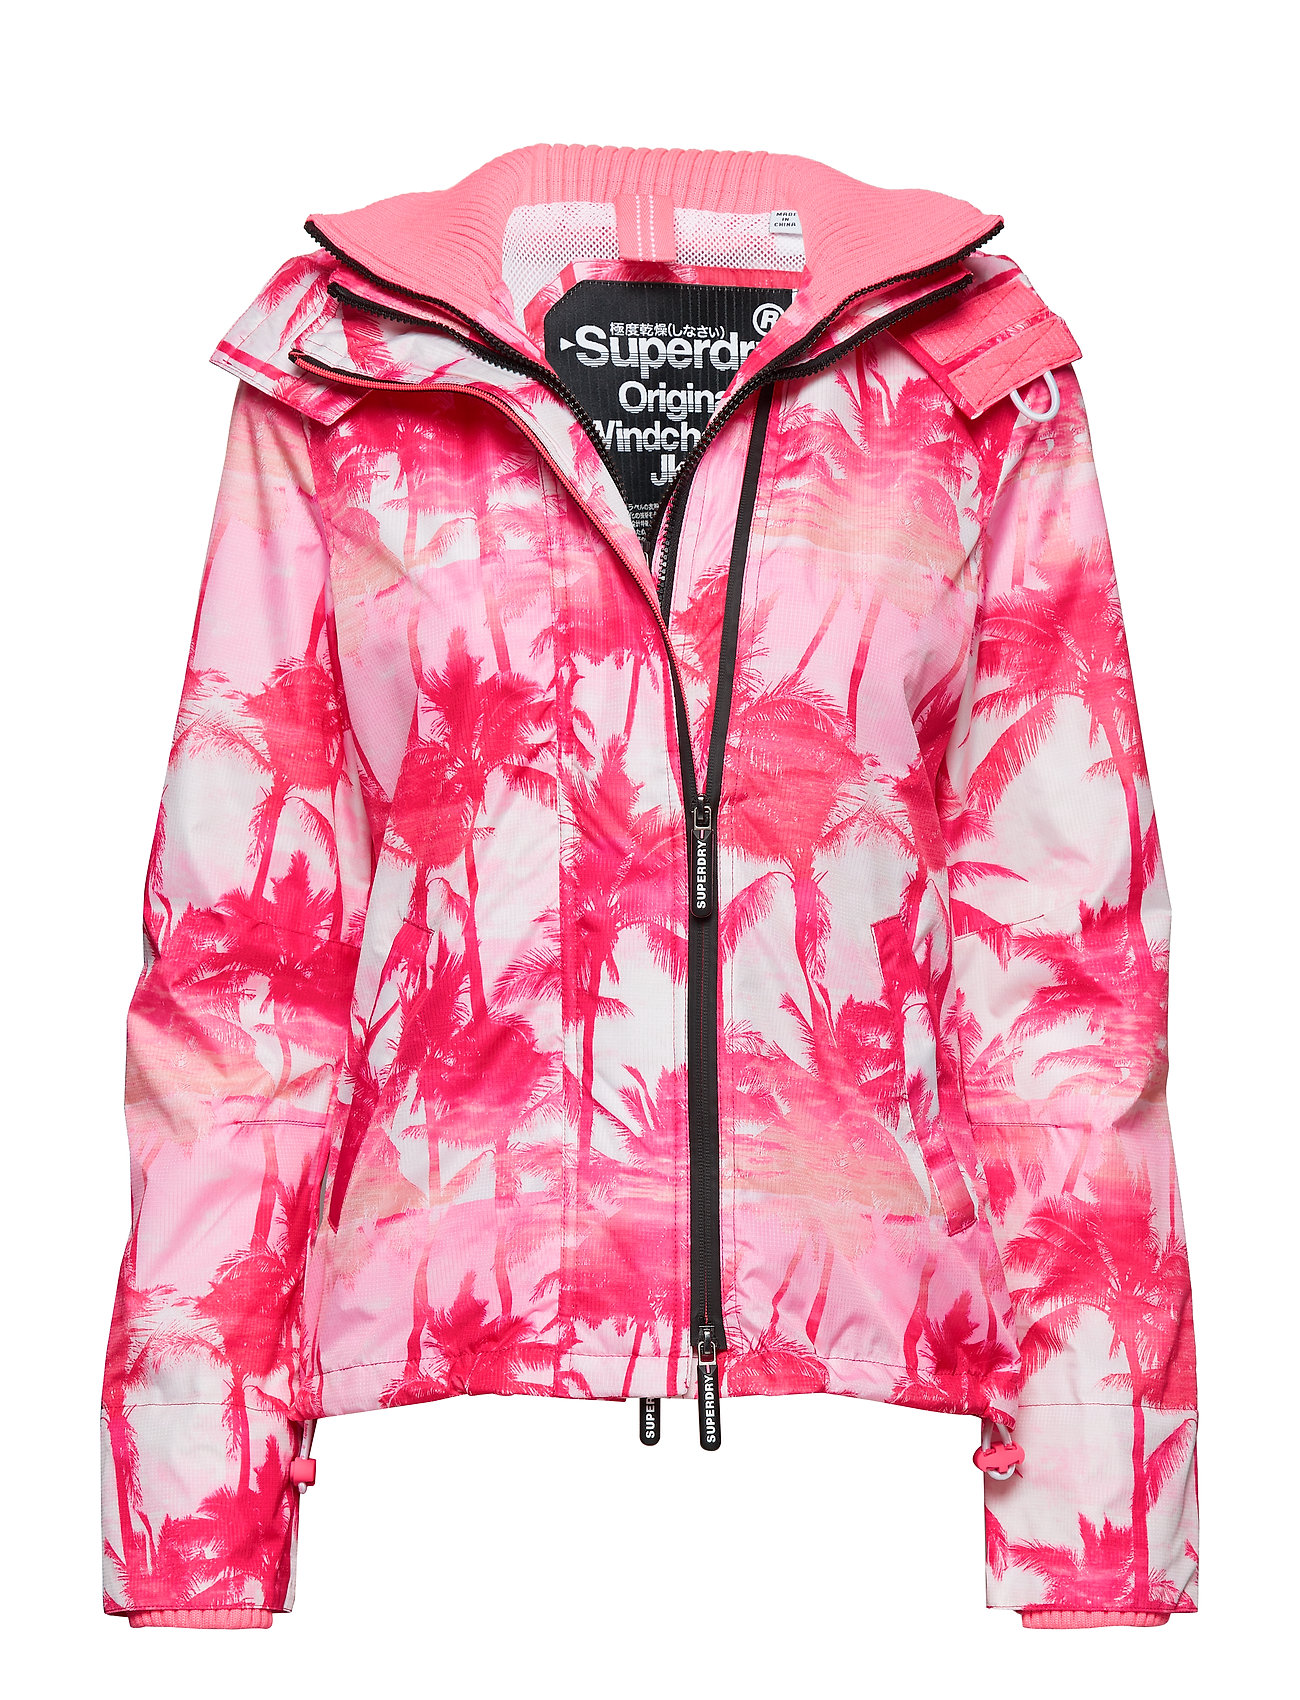 Superdry BLACK EDITION WINDCHEATER - PINK PASTEL PALM/SILVER/NEON PINK